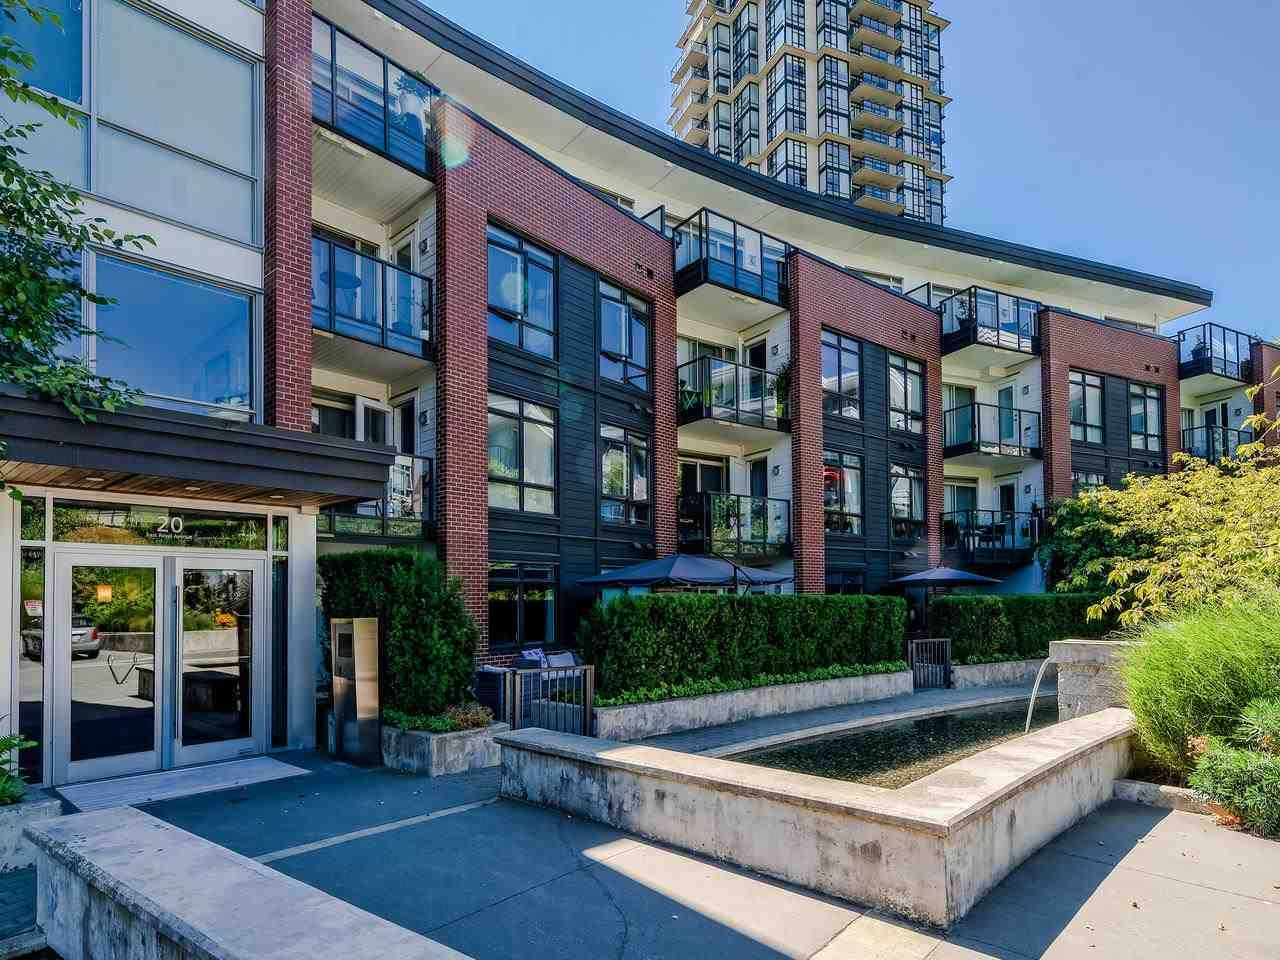 """Main Photo: 108 20 E ROYAL Avenue in New Westminster: Fraserview NW Condo for sale in """"The Lookout"""" : MLS®# R2483013"""